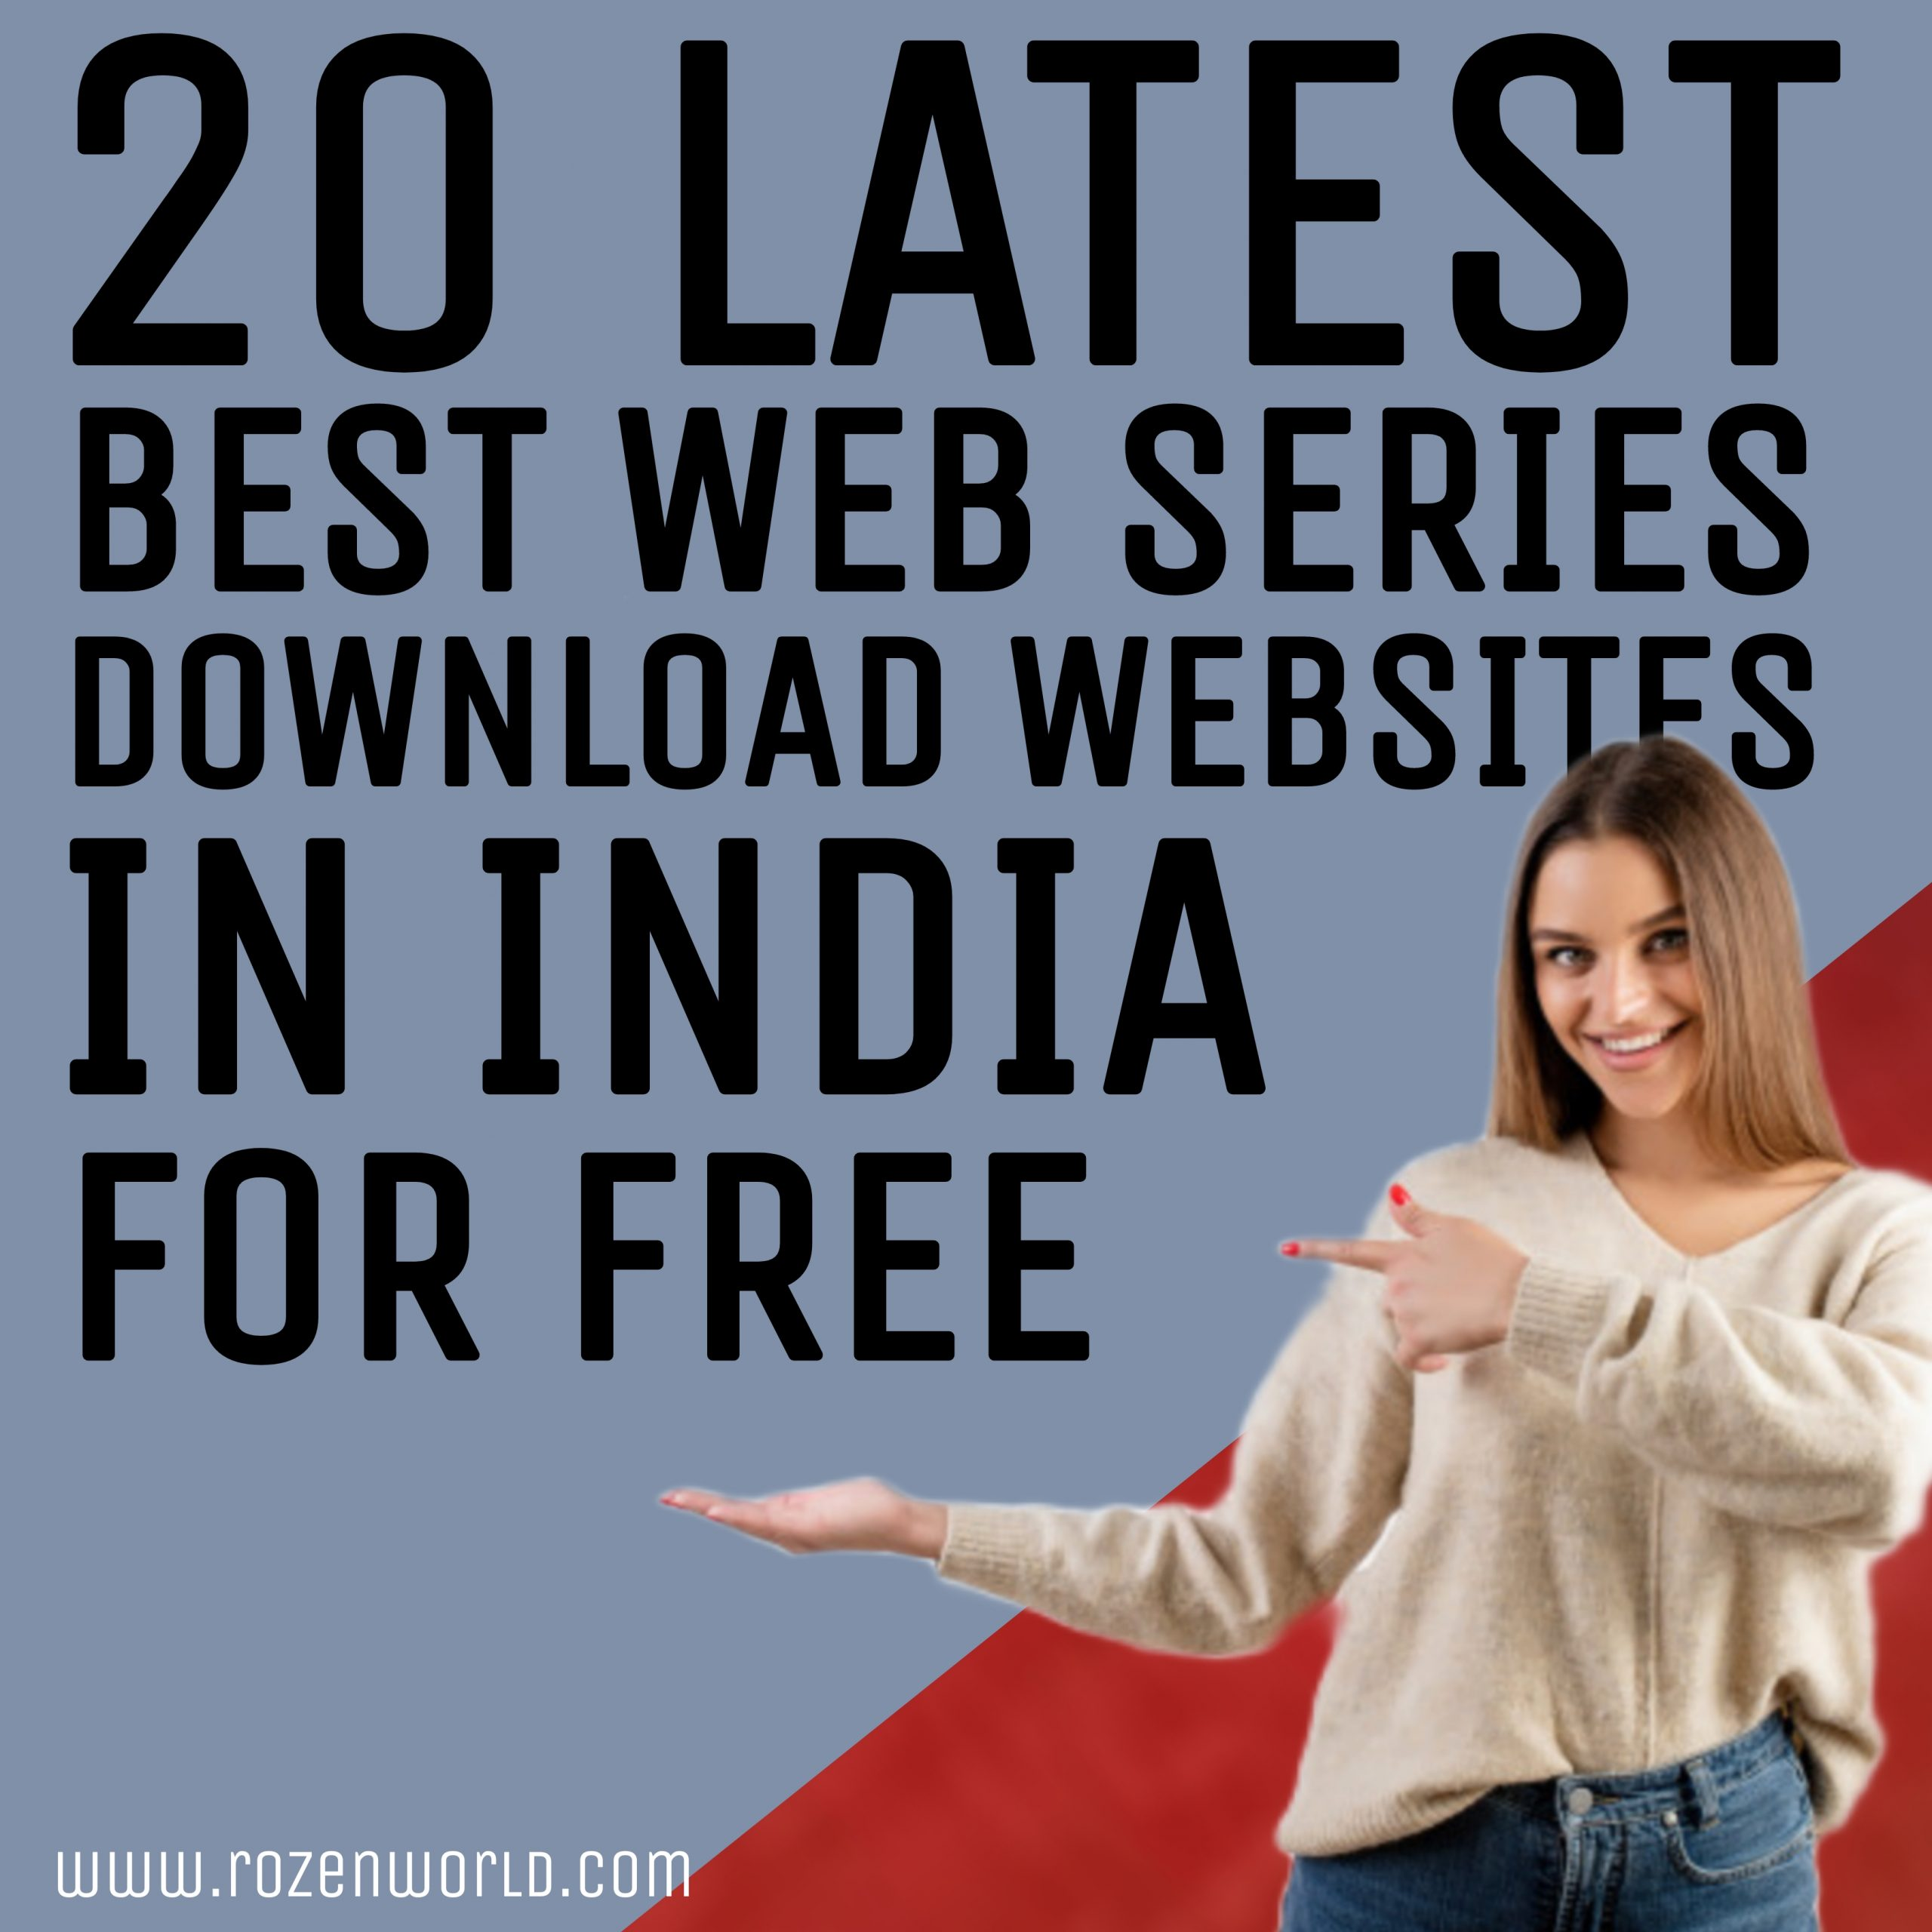 20 Latest Best Web Series Download Websites in India for free thumbnail